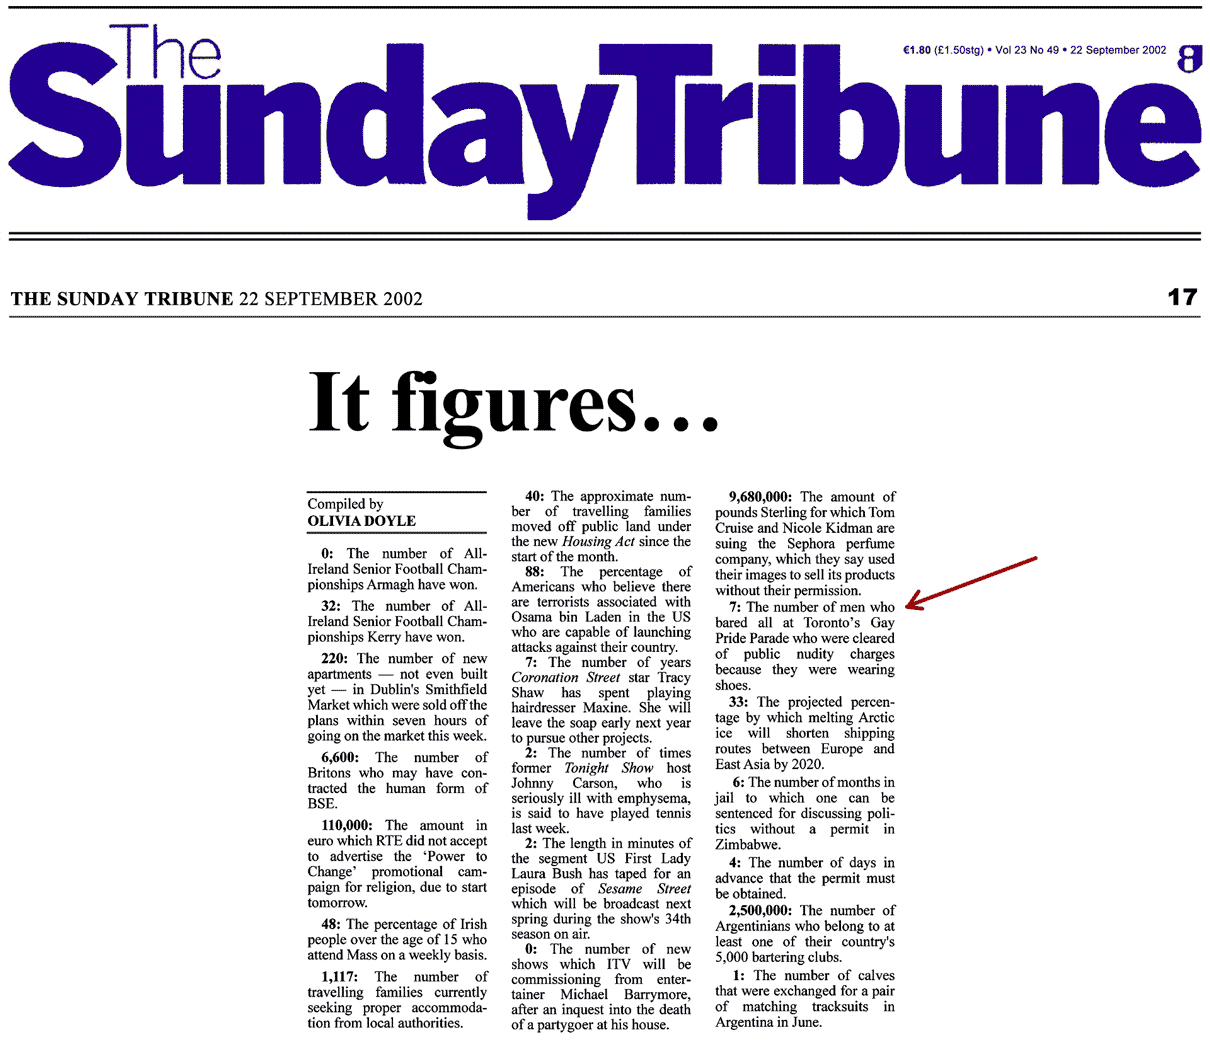 Sunday Tribune [Dublin, Ireland] 2002-09-22 Charges gone